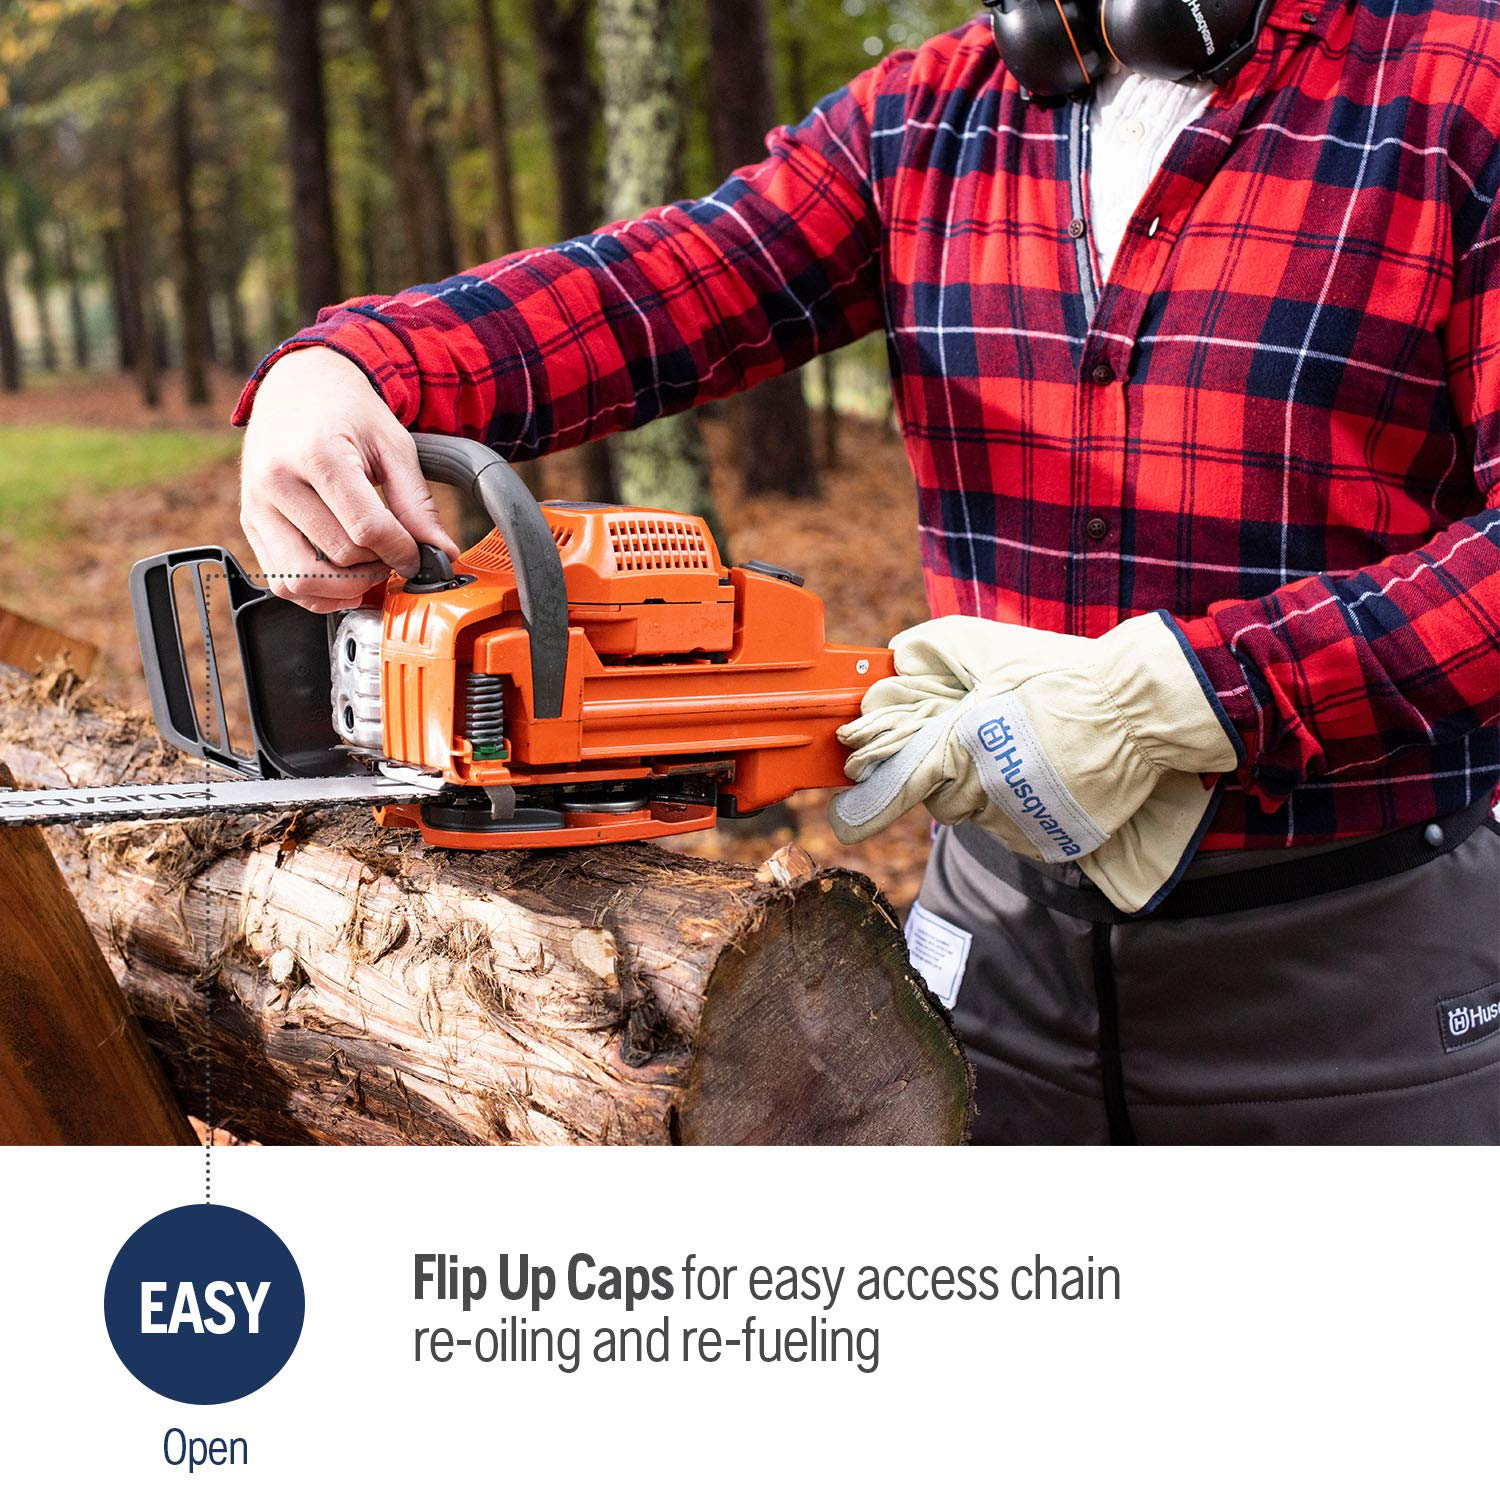 Husqvarna 460 Rancher Chainsaws product image 3